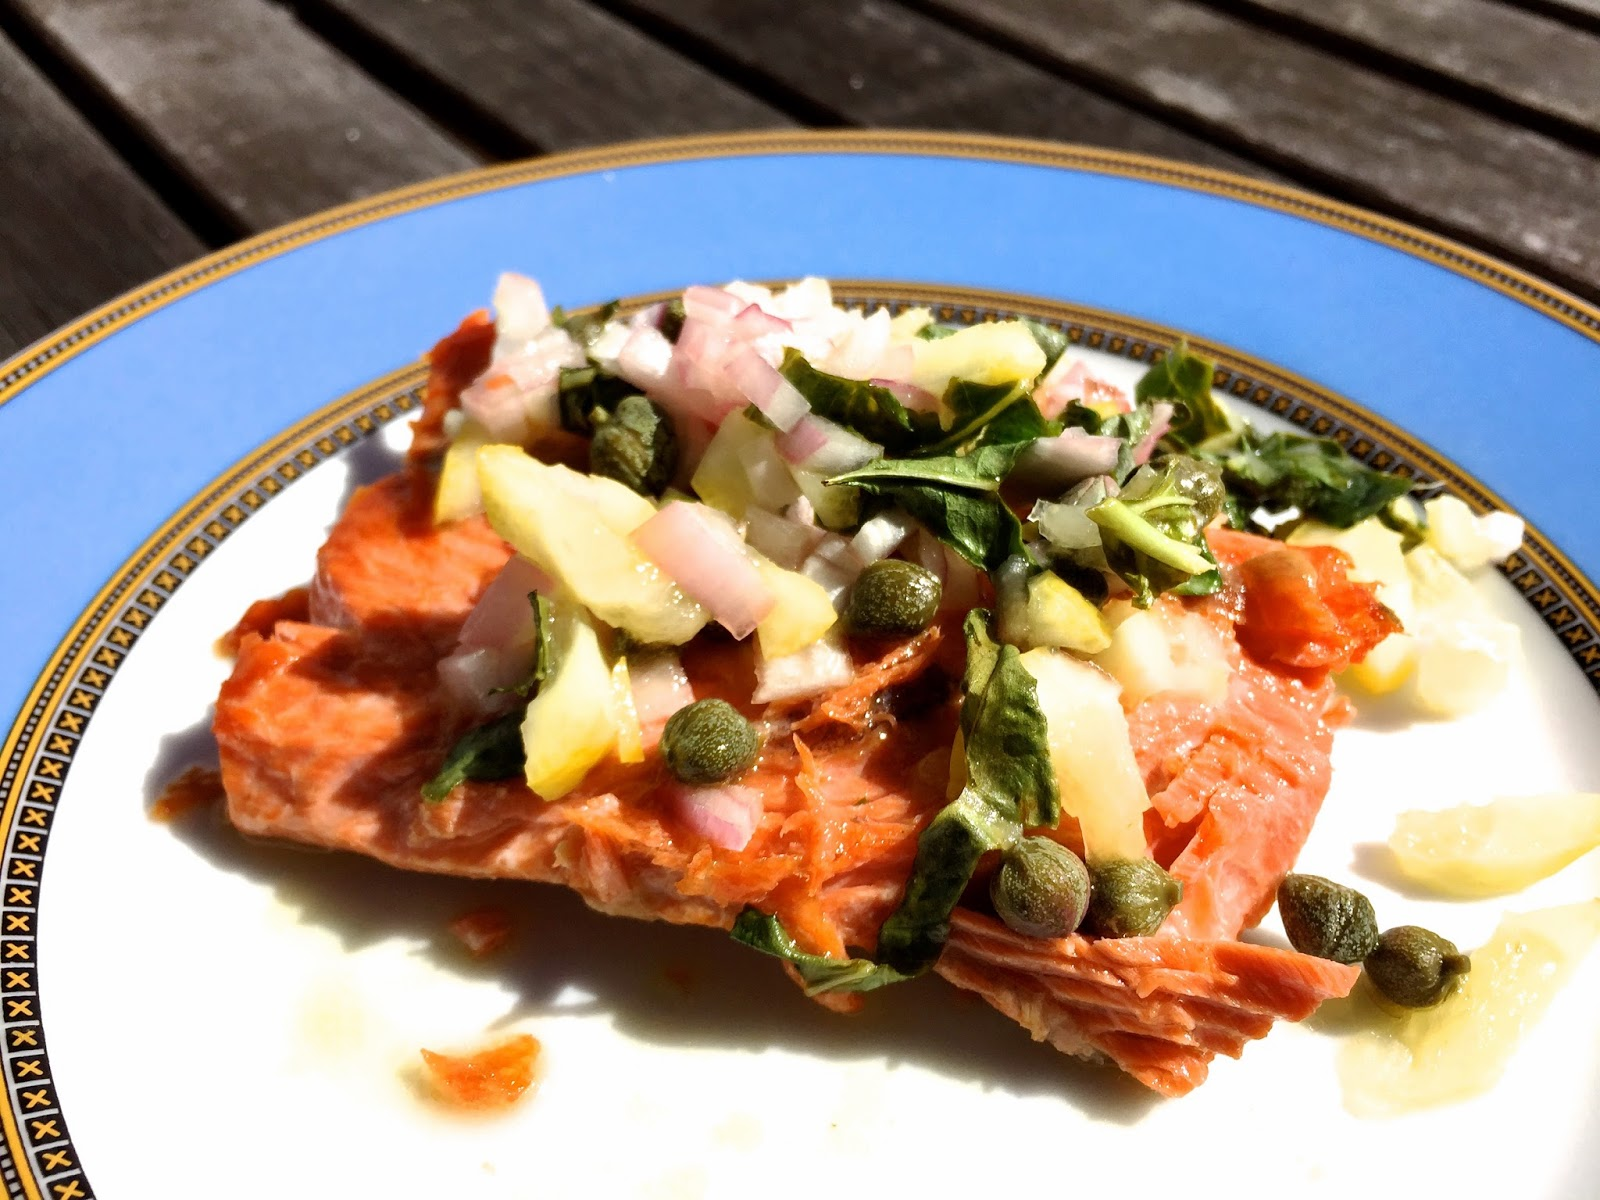 sprouted kitchen book dark table plain jane more salmon from